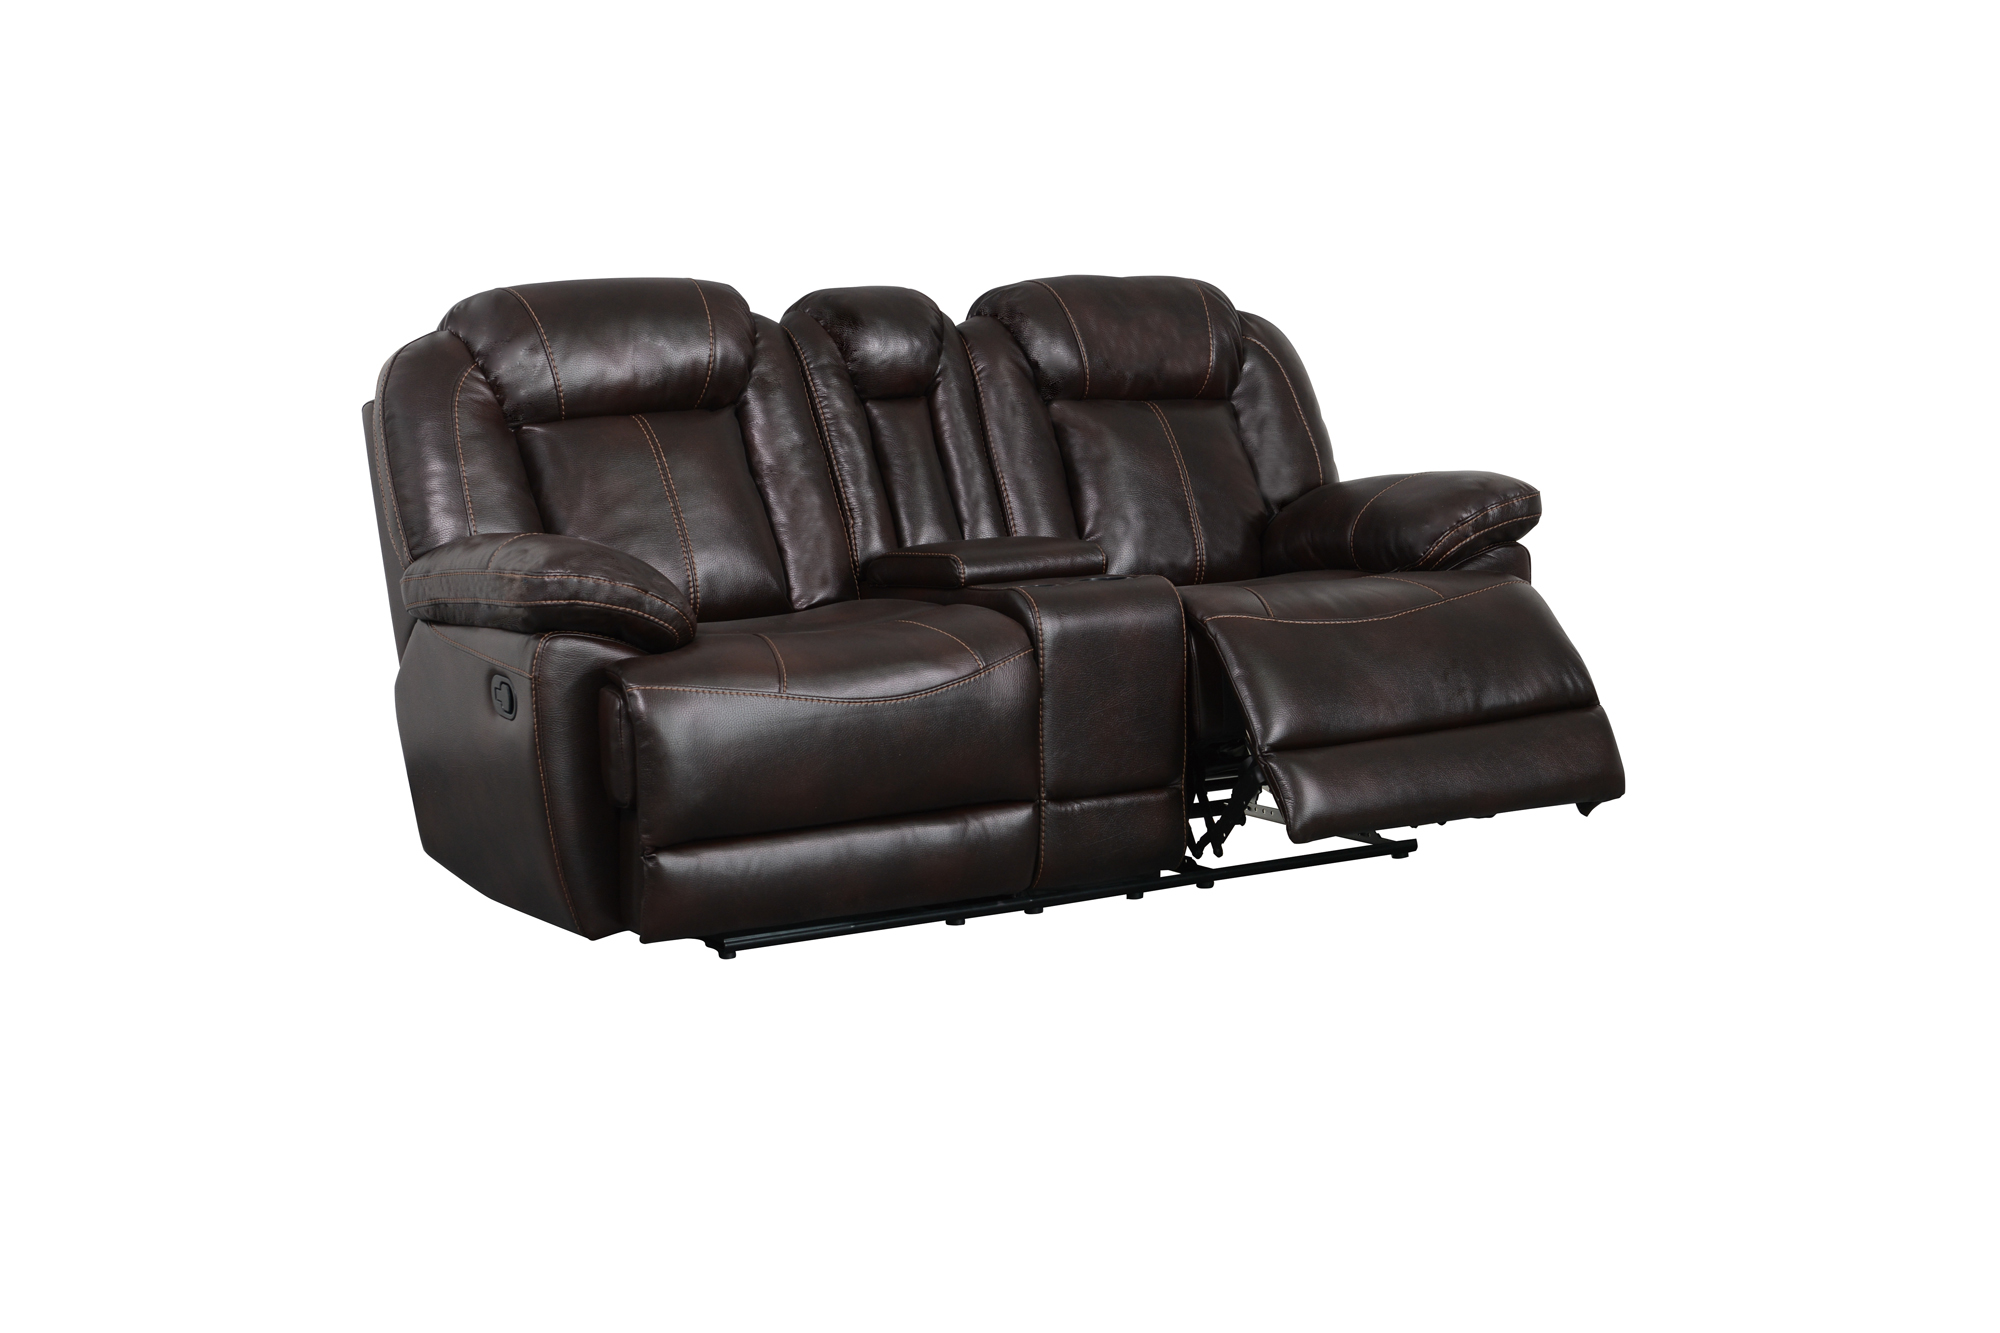 Astonishing U8304 Brown Leather Air Console Reclining Loveseat By Global Furniture Ocoug Best Dining Table And Chair Ideas Images Ocougorg